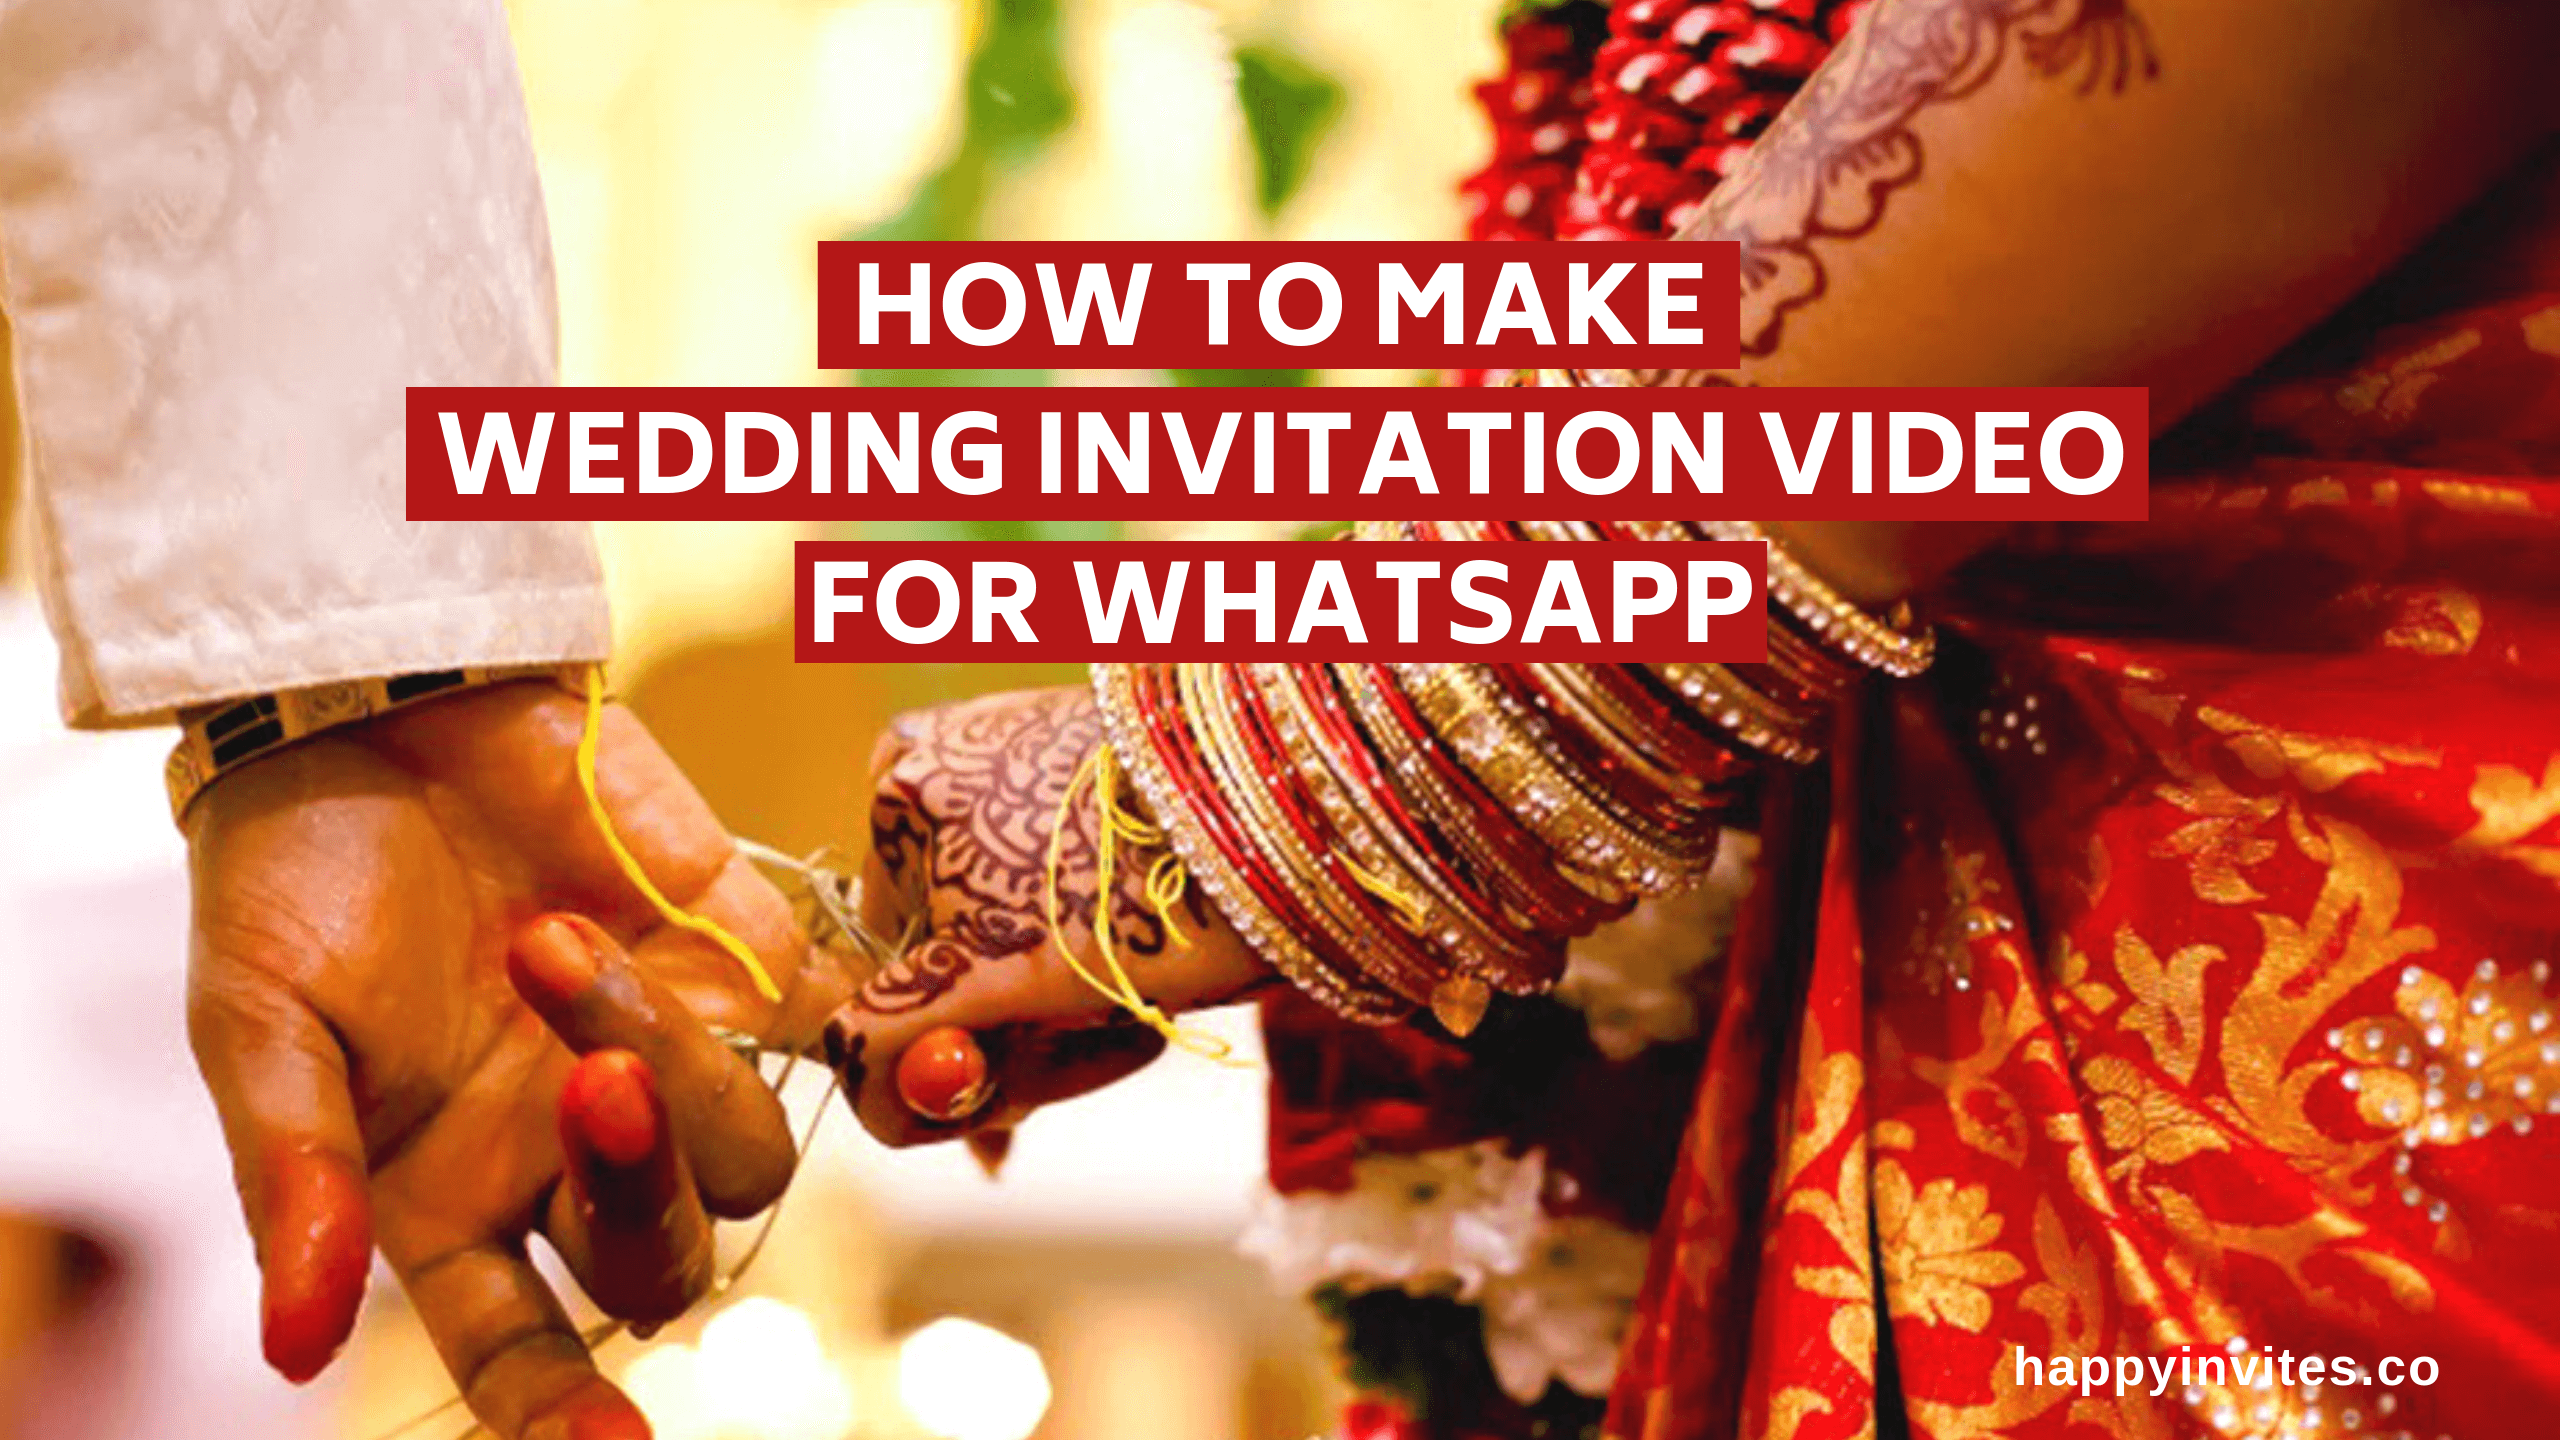 How To Make Wedding Invitation Video For Whatsapp Wedding Invitation Video Wedding Invitations Destination Wedding Save The Dates